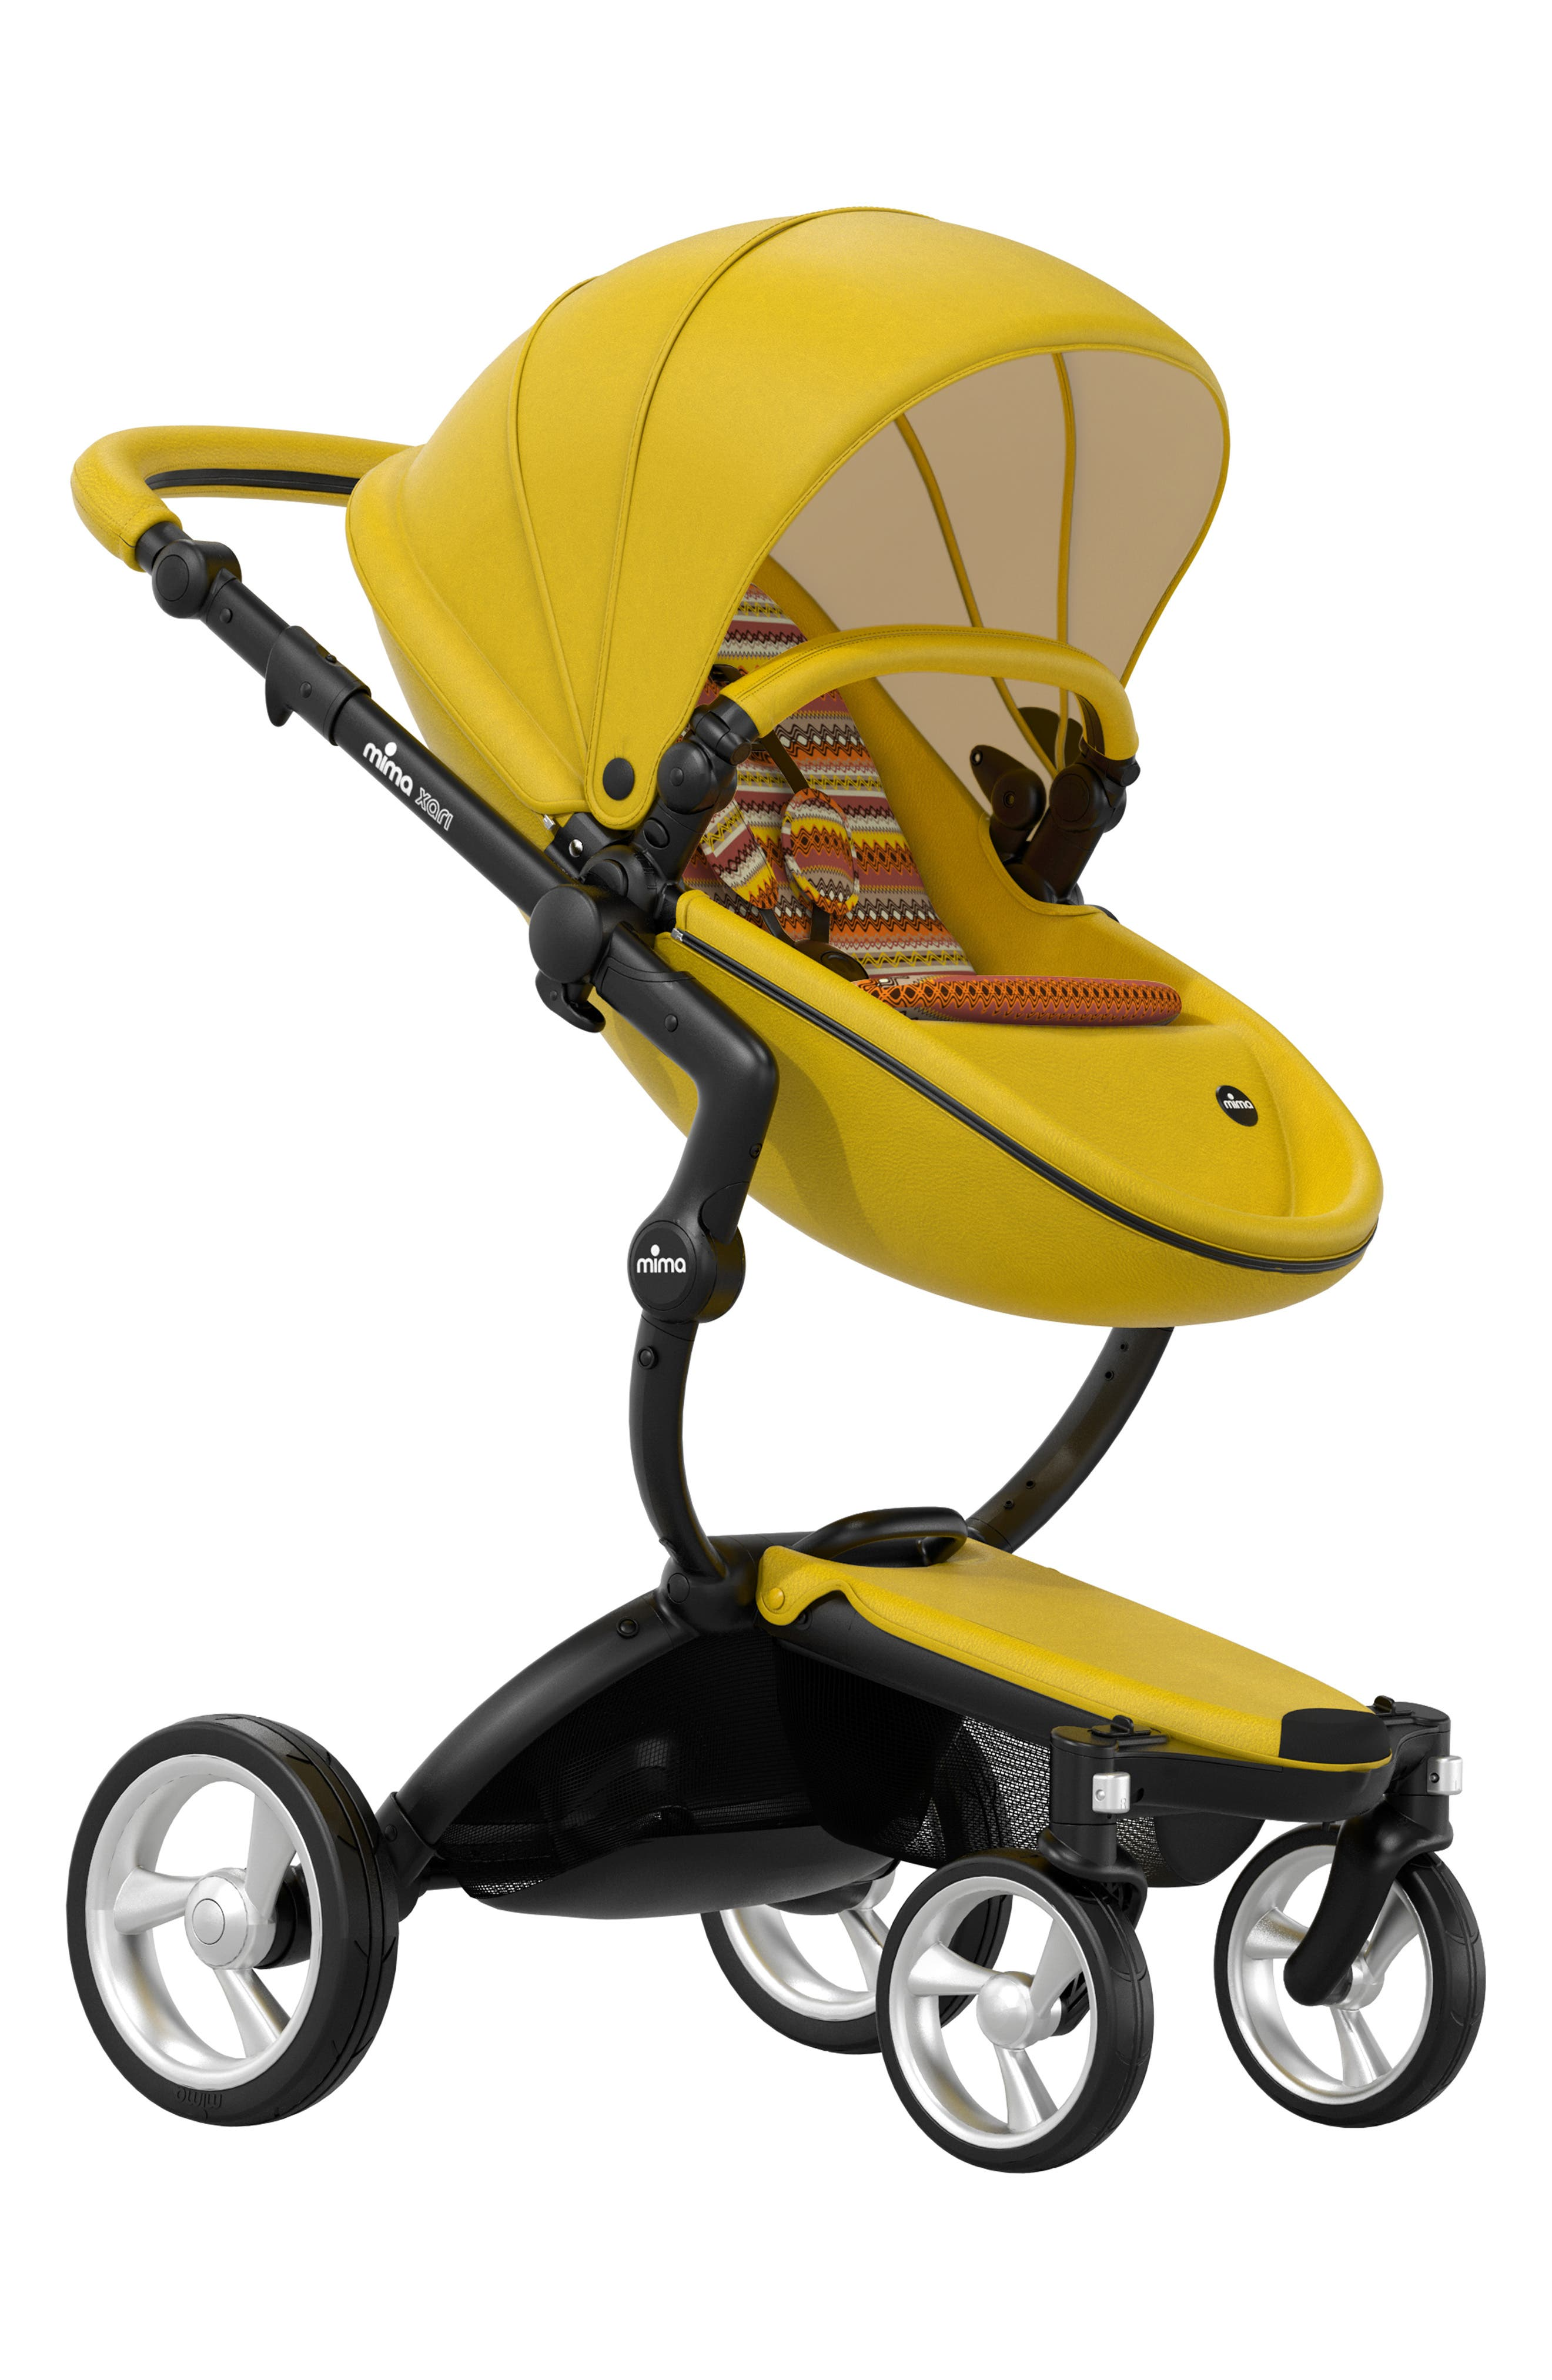 Xari Special Edition Chassis Stroller with Seat, Carrycot & Accessories, Main, color, SPECIAL EDITION YELLOW